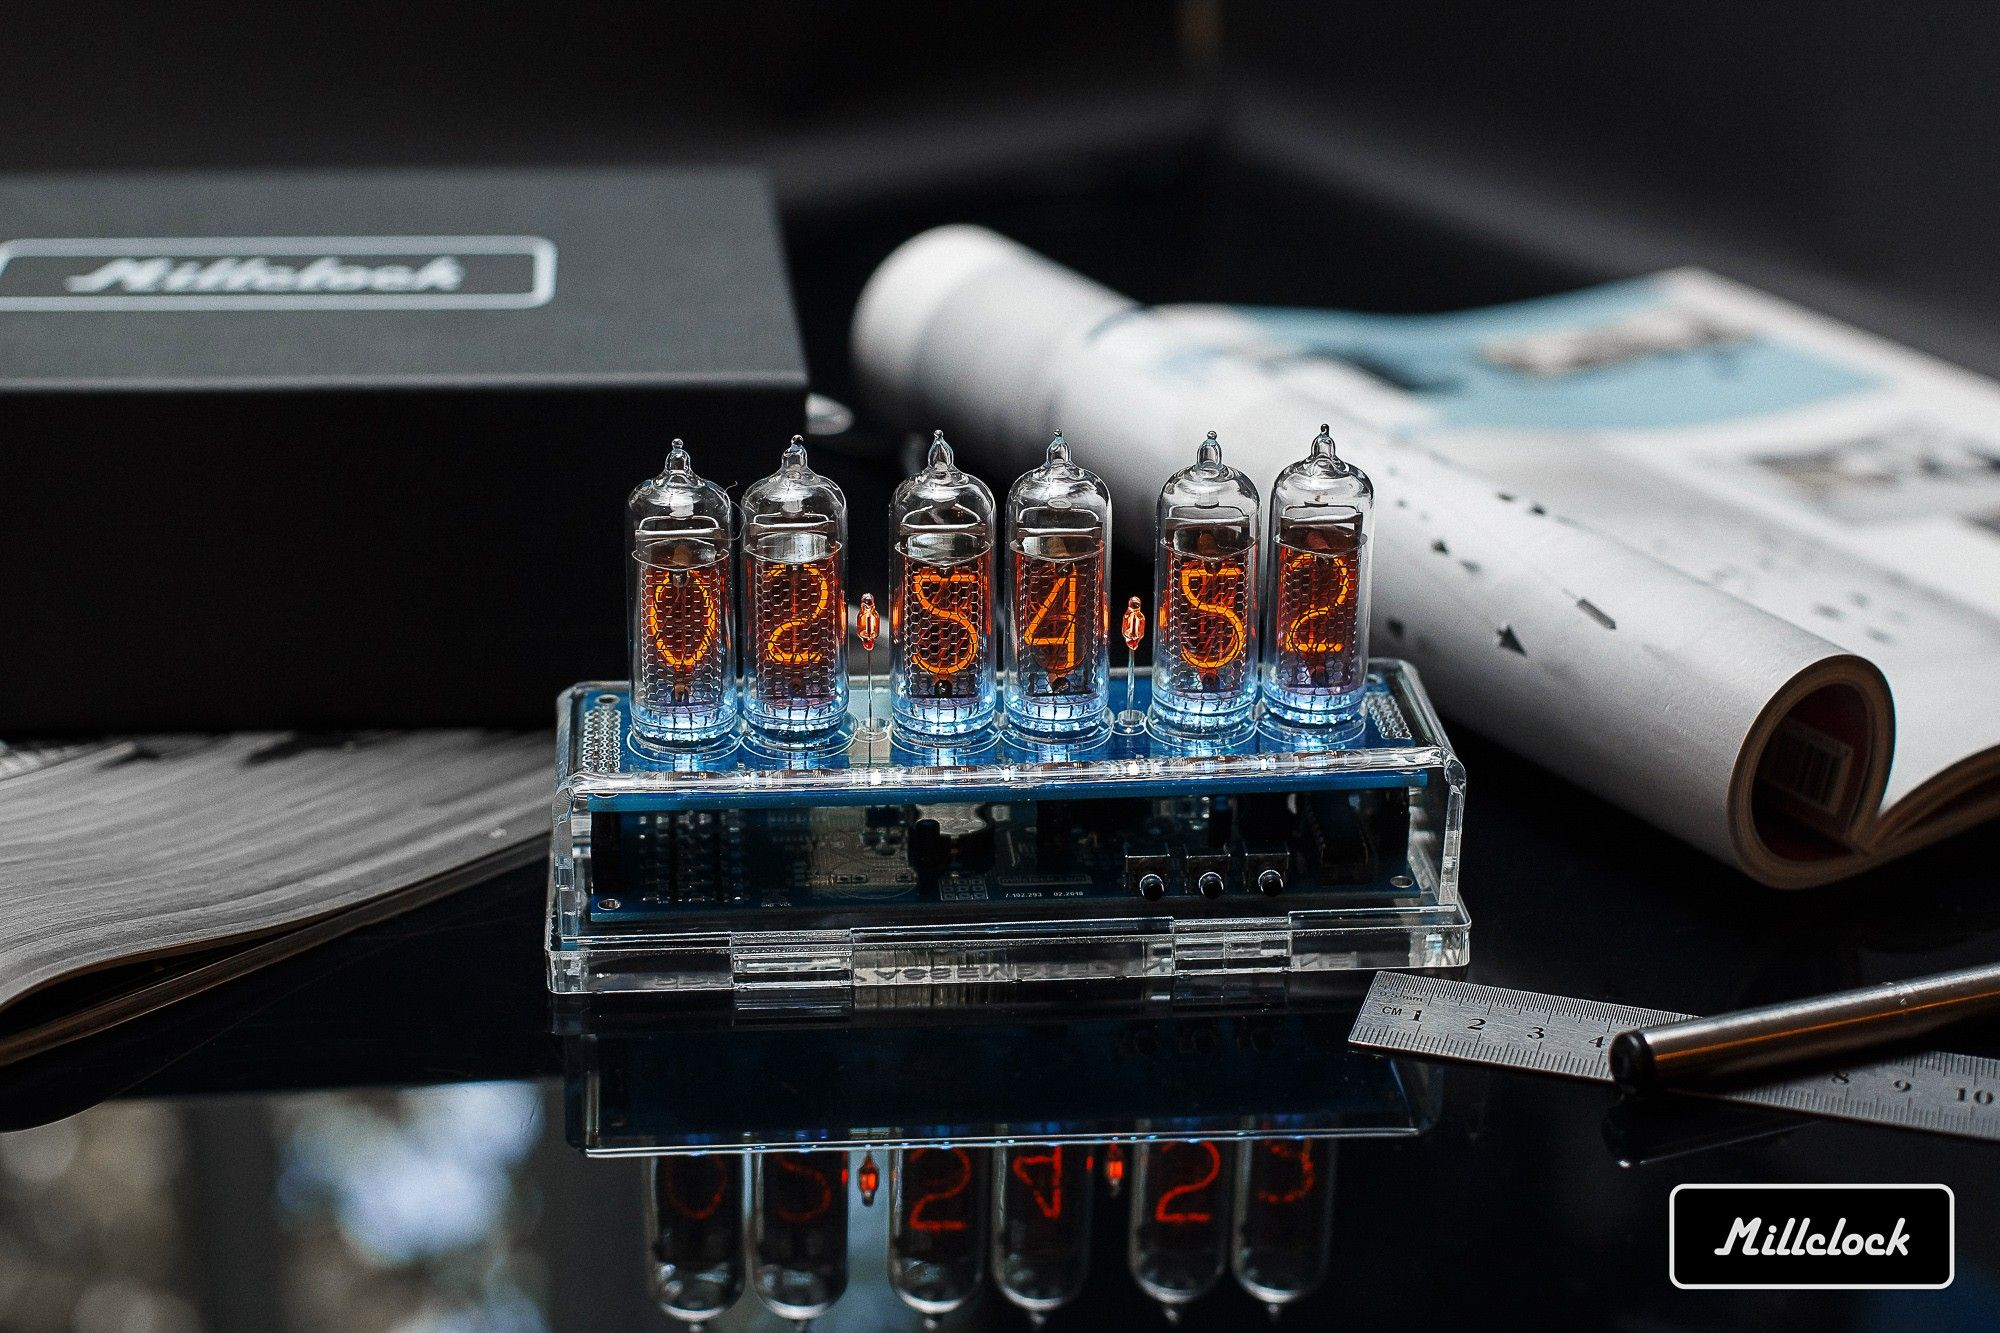 IN-14 NIXIE TUBE CLOCK ASSEMBLED ACRYLIC ENCLOSURE  ADAPTER 6-tubes by MILLCLOCK